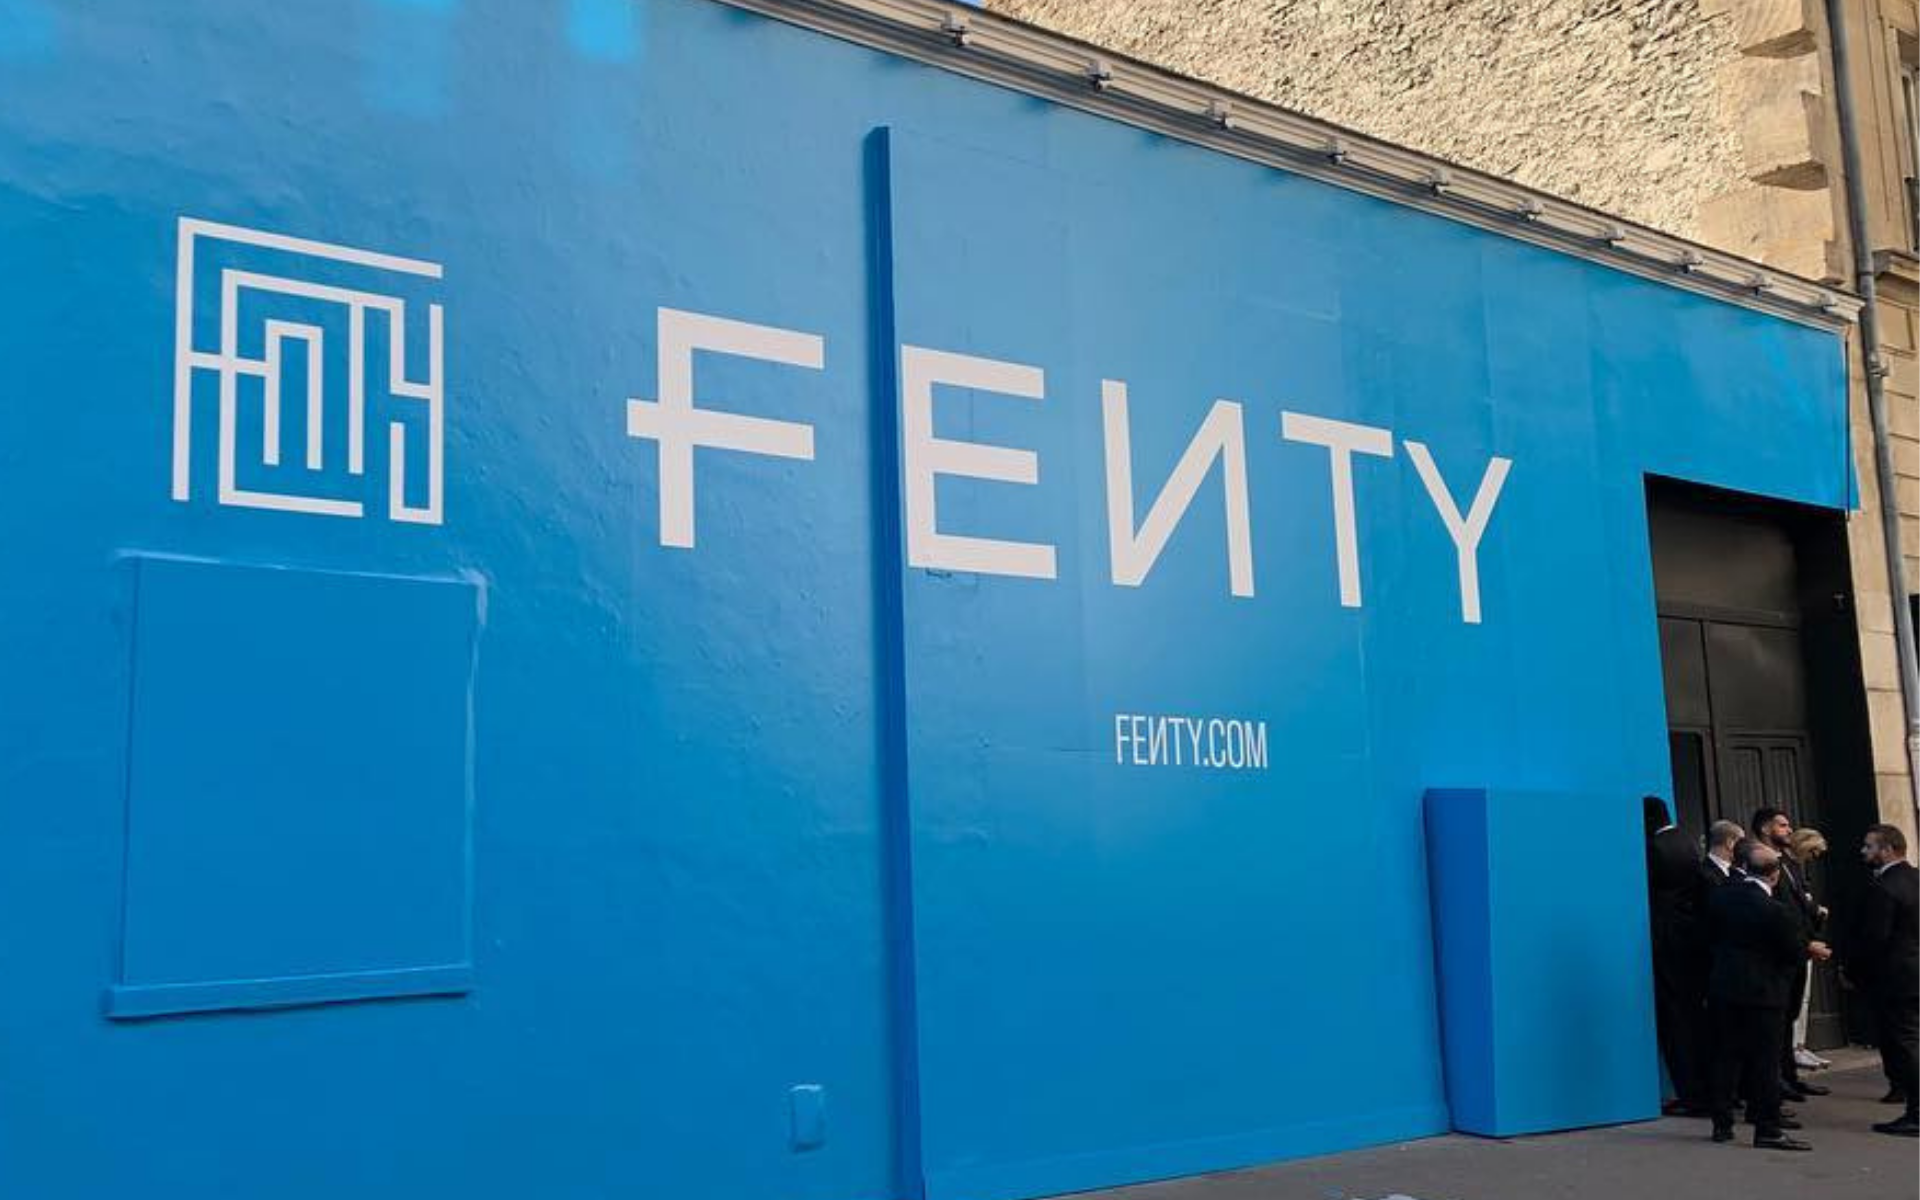 Rihanna's luxury fashion label in collaboration with LVMH, Fenty launched in 2019